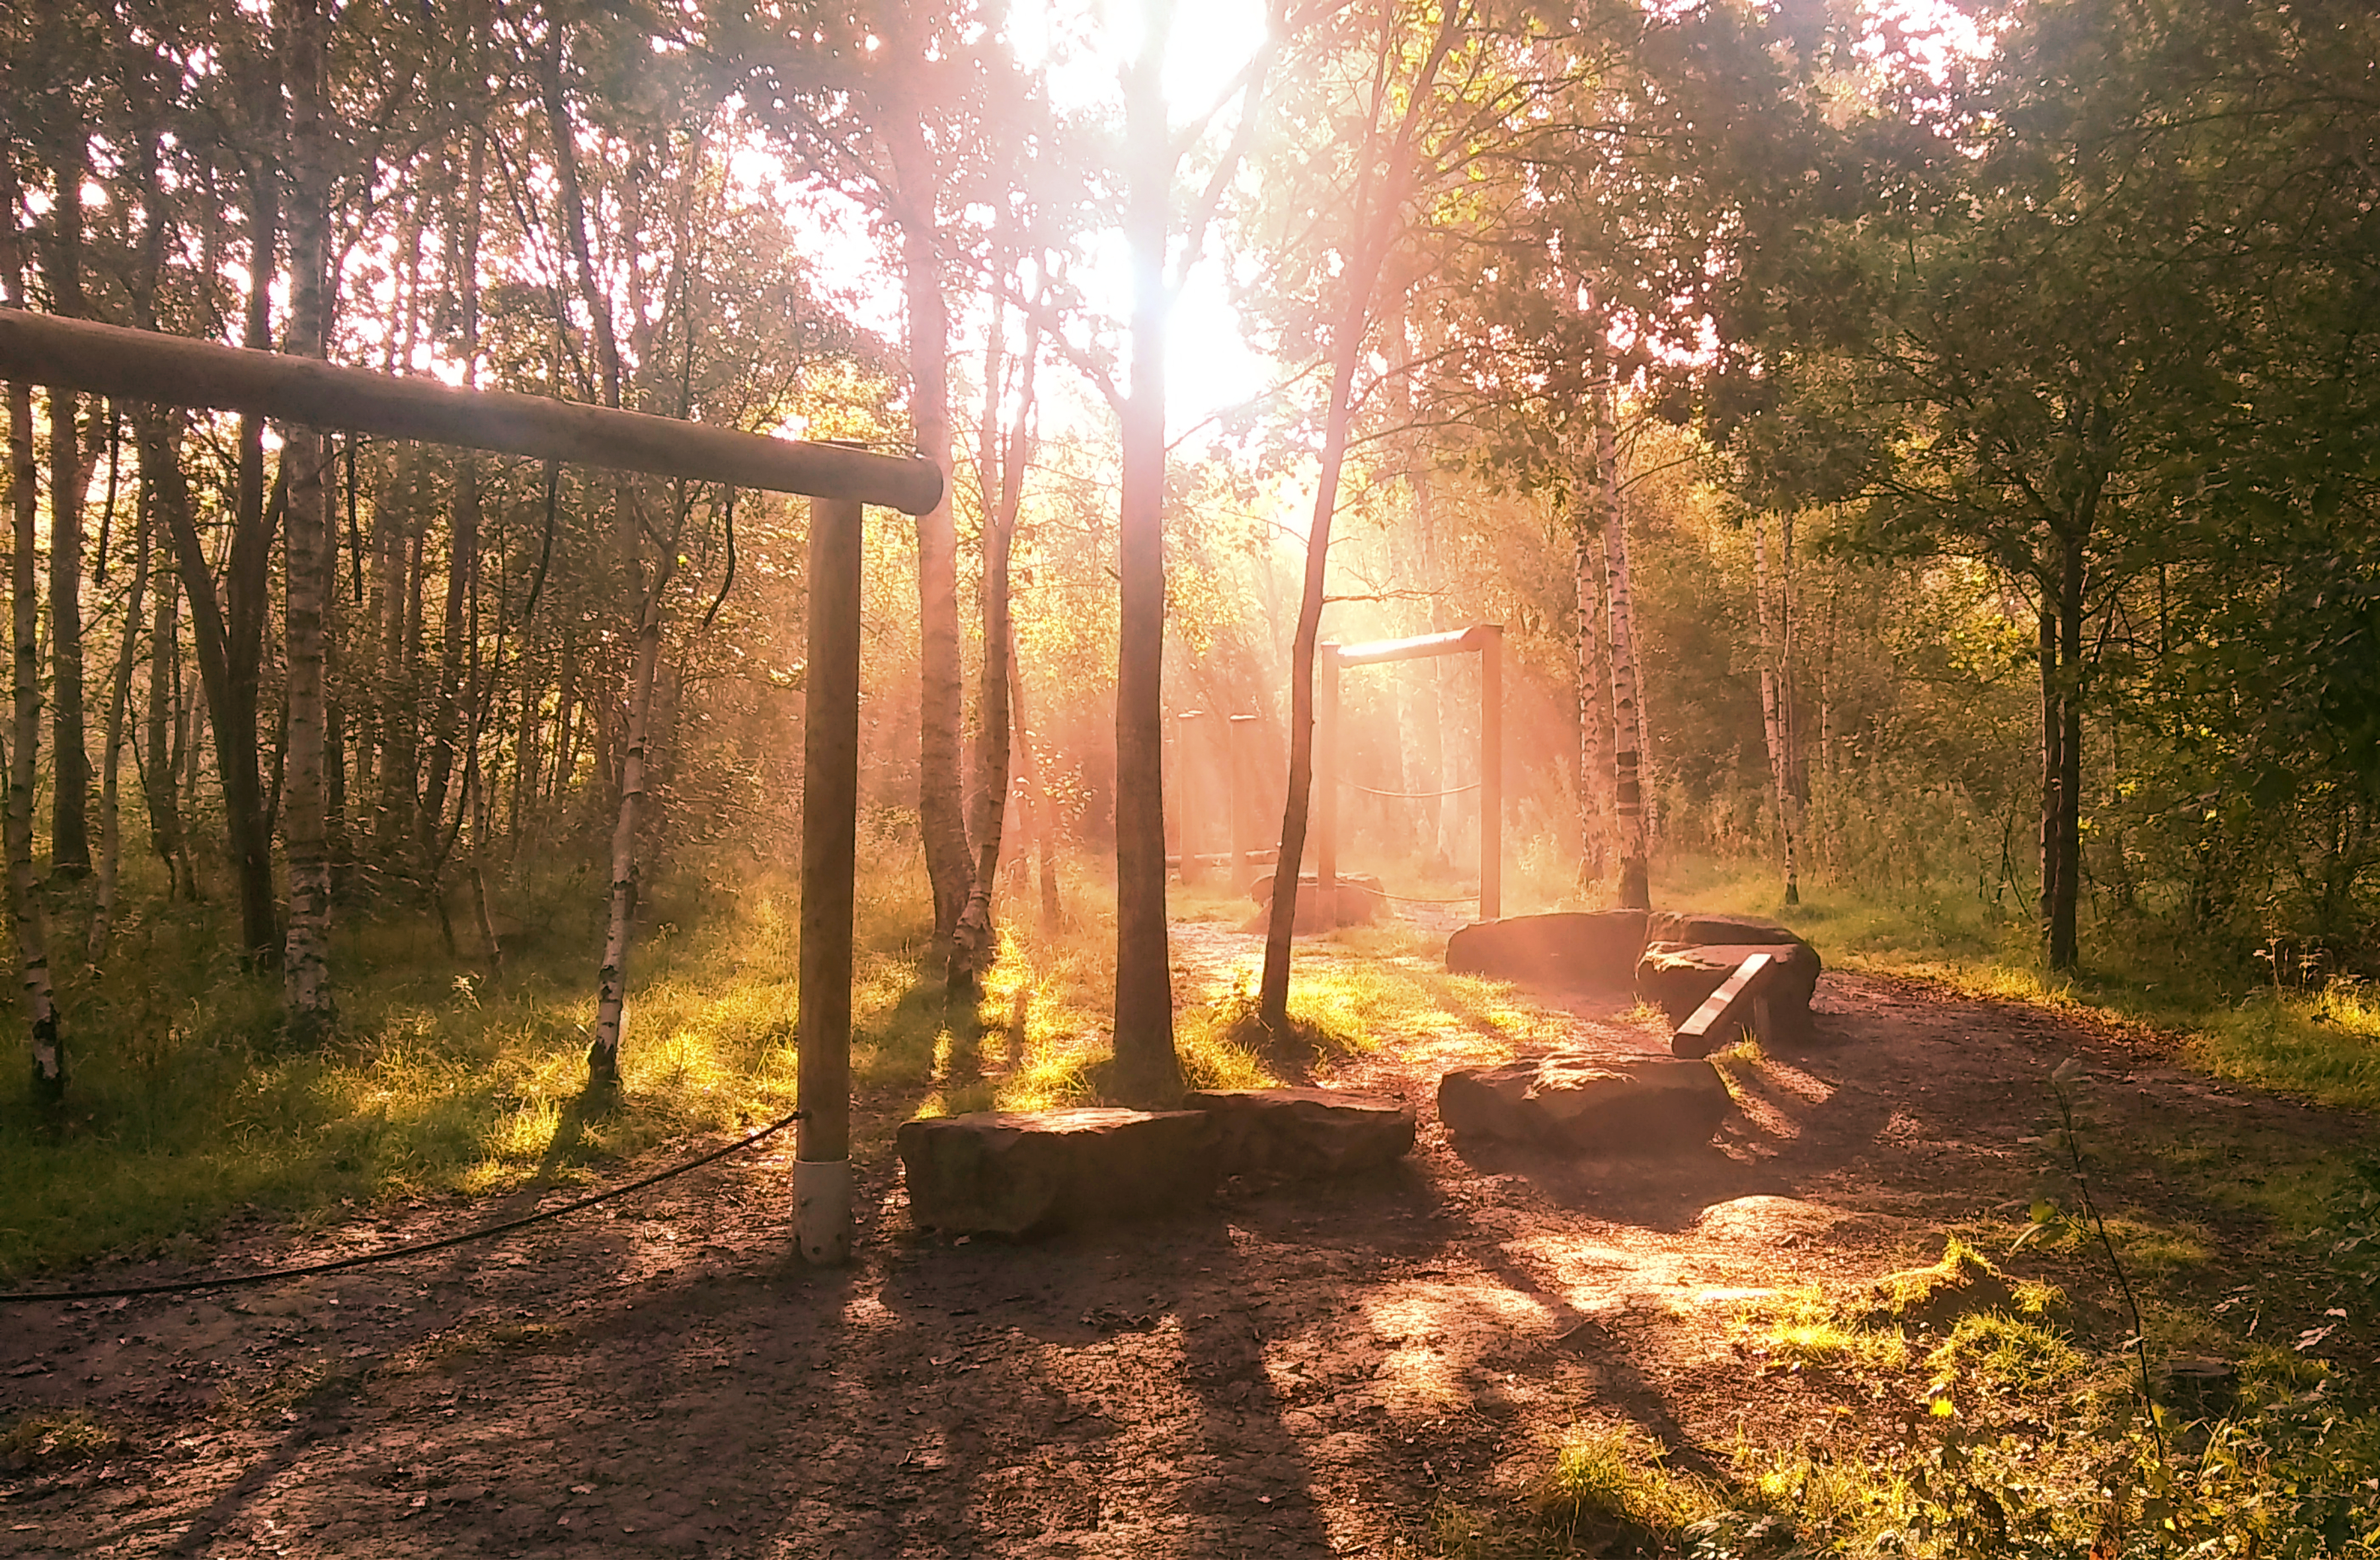 Sunshine breaking through trees onto wooden adventure trail equipment by Antony Stock